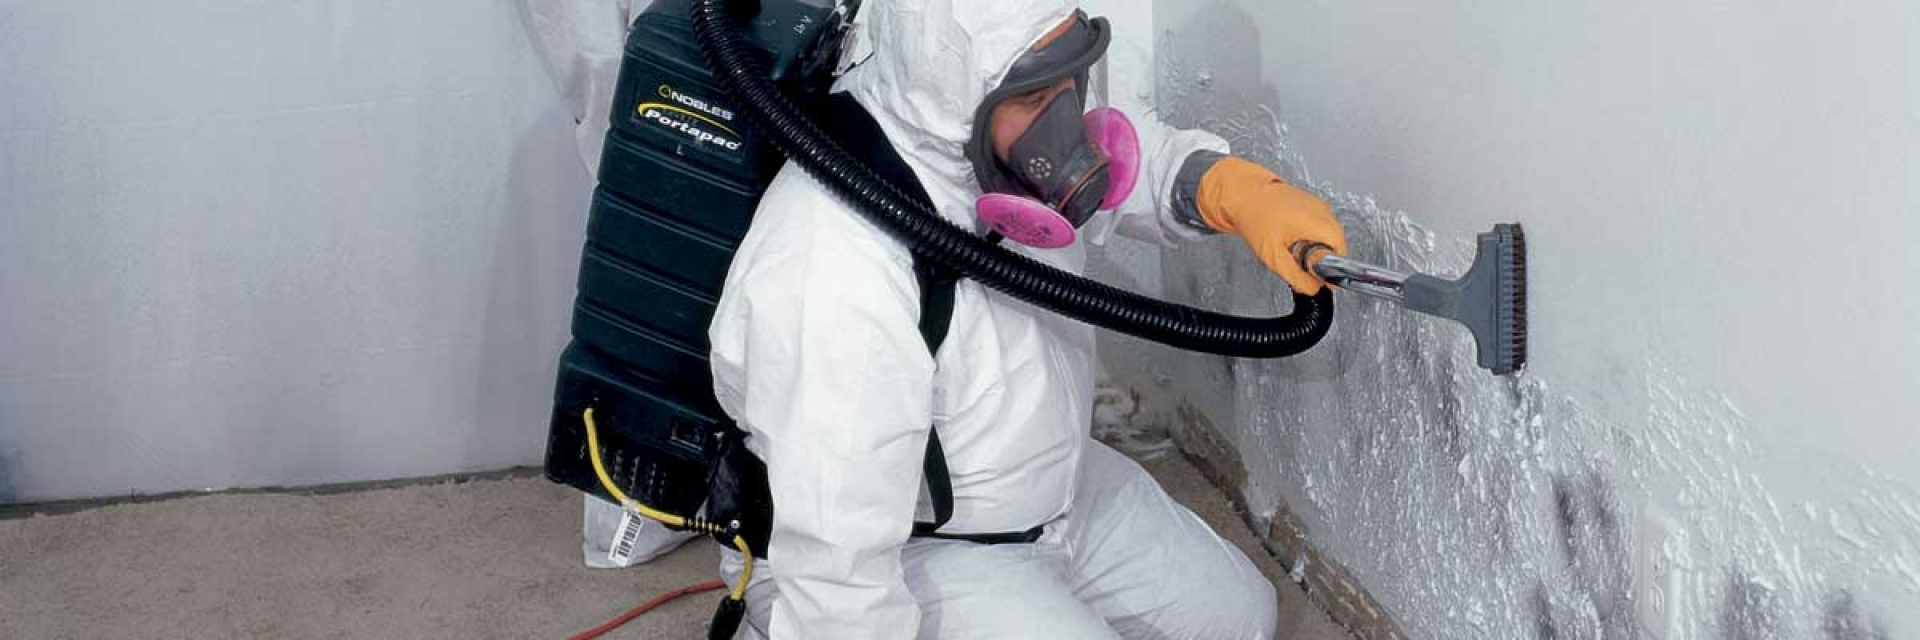 Mold Remediation: Professional Mold Removal Techniques